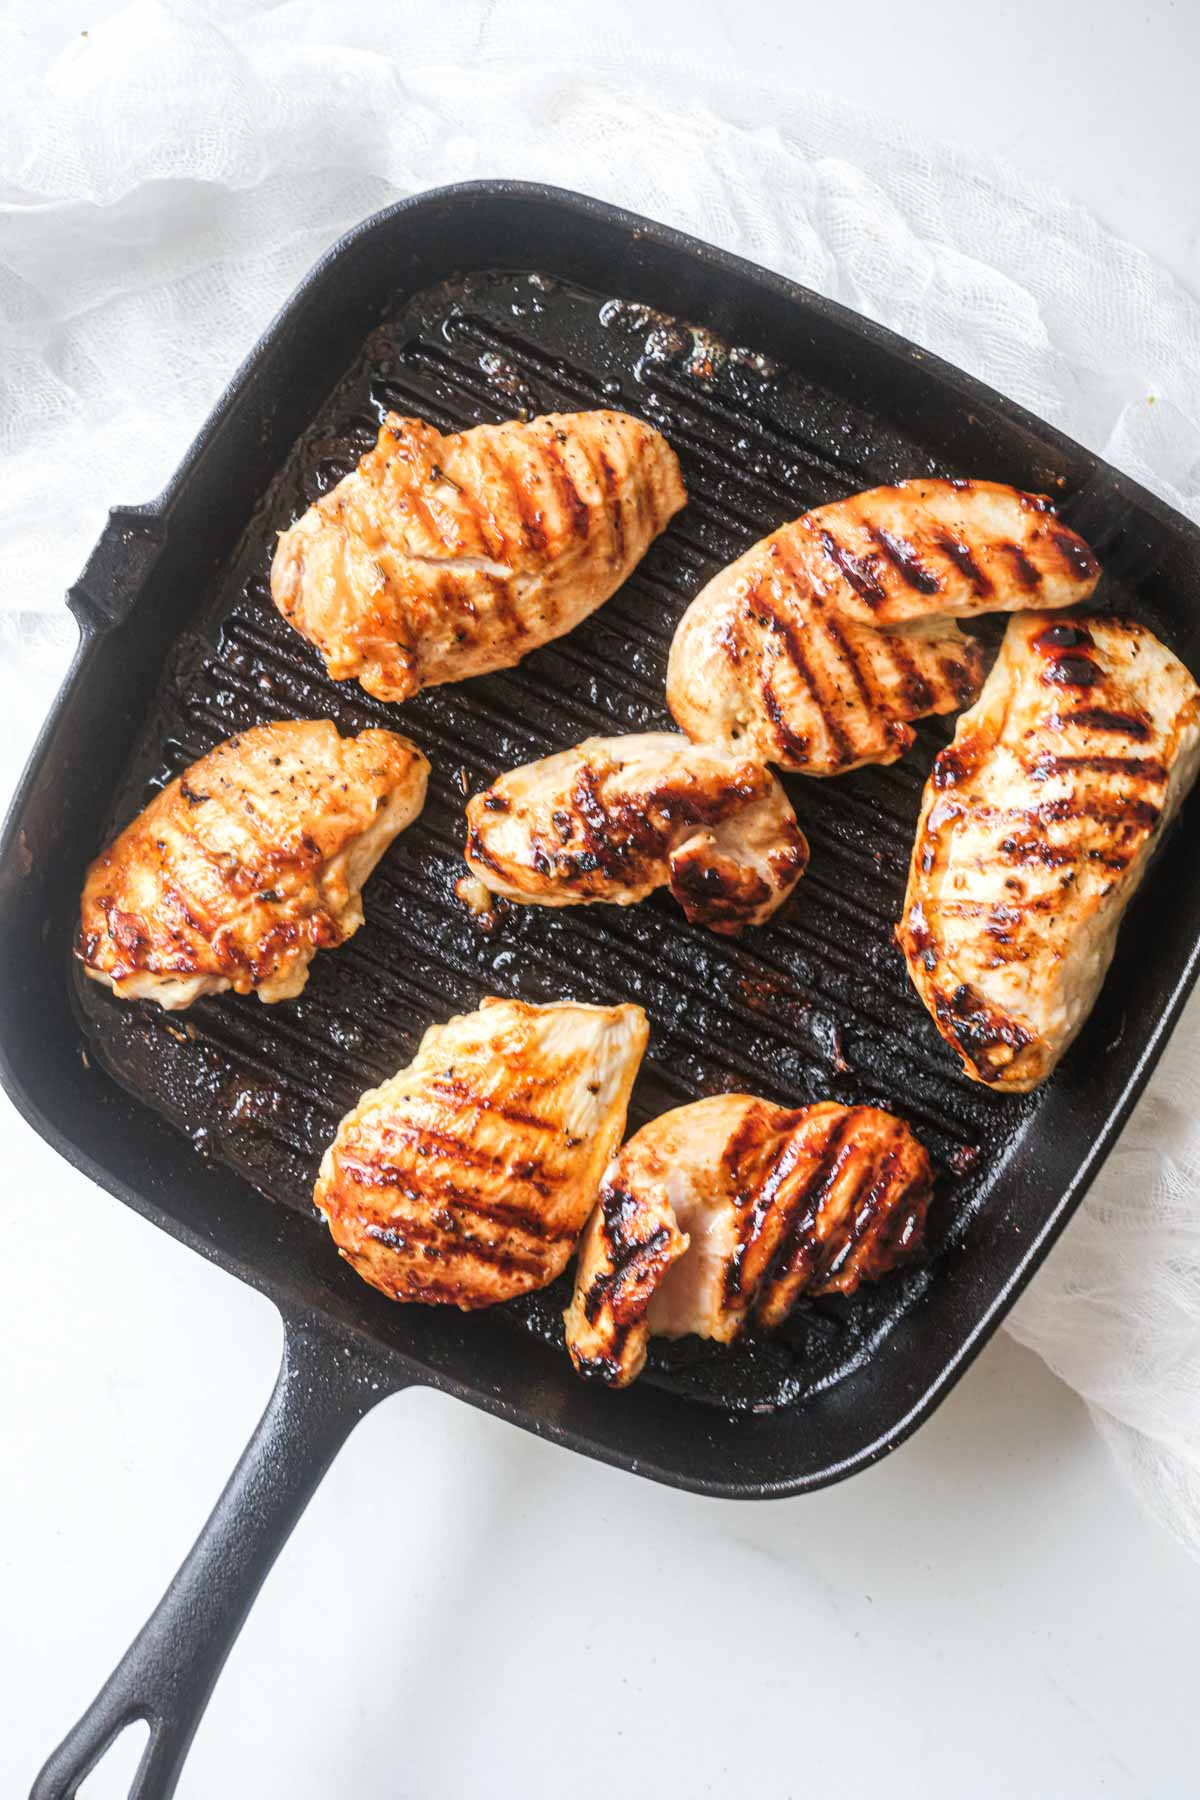 the chicken tenders inside being cooked in a grill pan